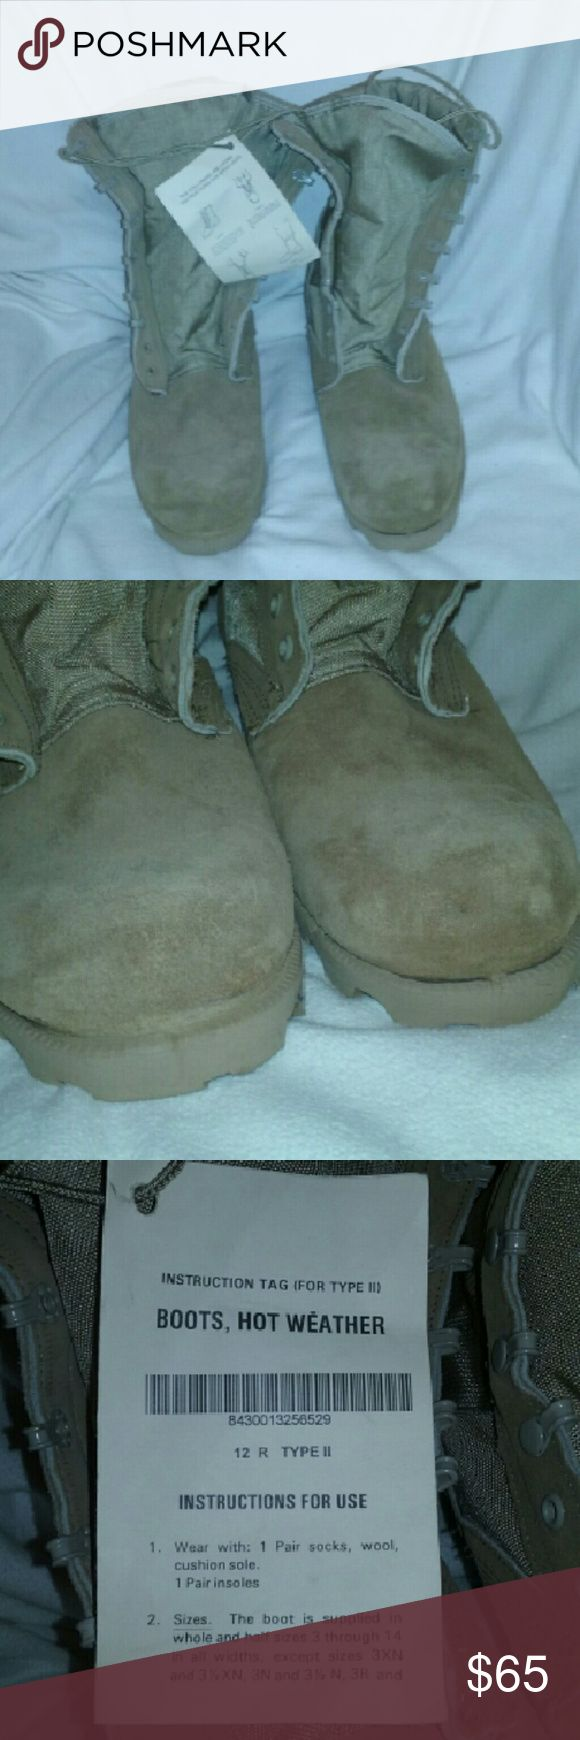 Wellco Boots Mens Work Hot Weather 12 New with tags, small bit of shelf wear and one minor mark on upper of left boot. Great pair of men's hot weather work boots. Size 12 R. Weighty pair. Wellco Shoes Boots